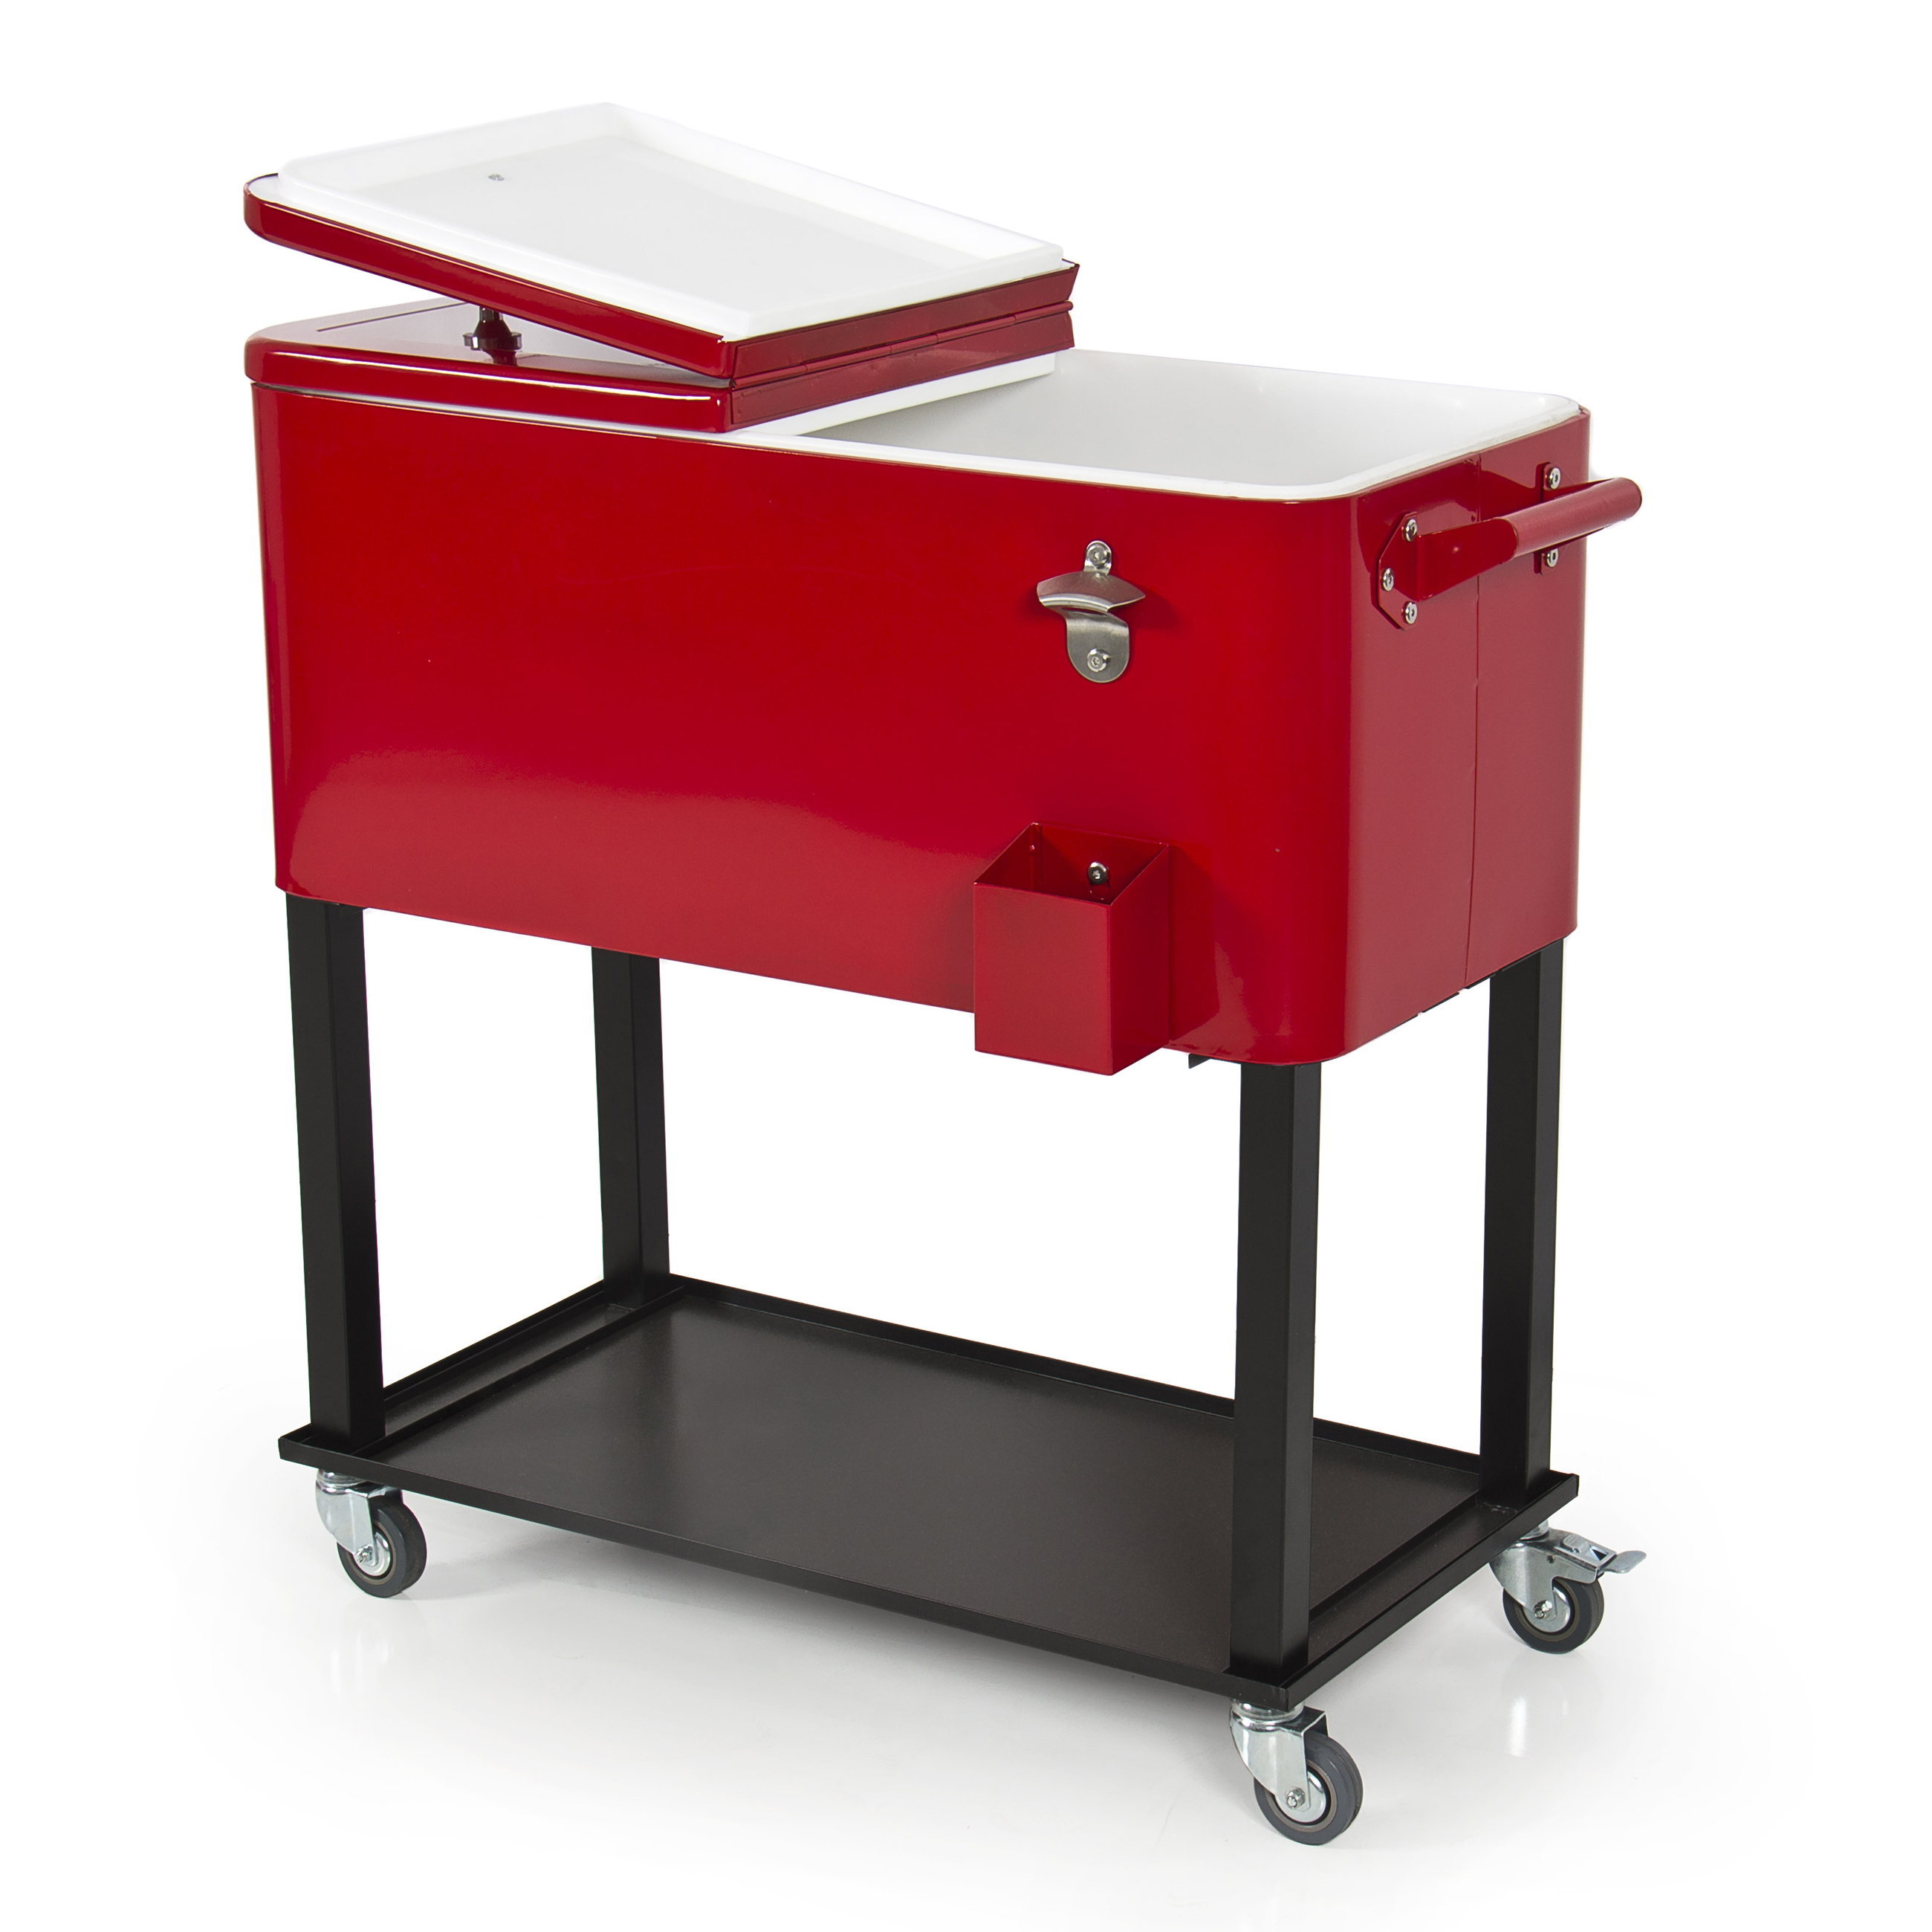 Patio Deck Cooler Rolling Outdoor 80 Quart Solid Steel Construction Home  Party   Walmart.com